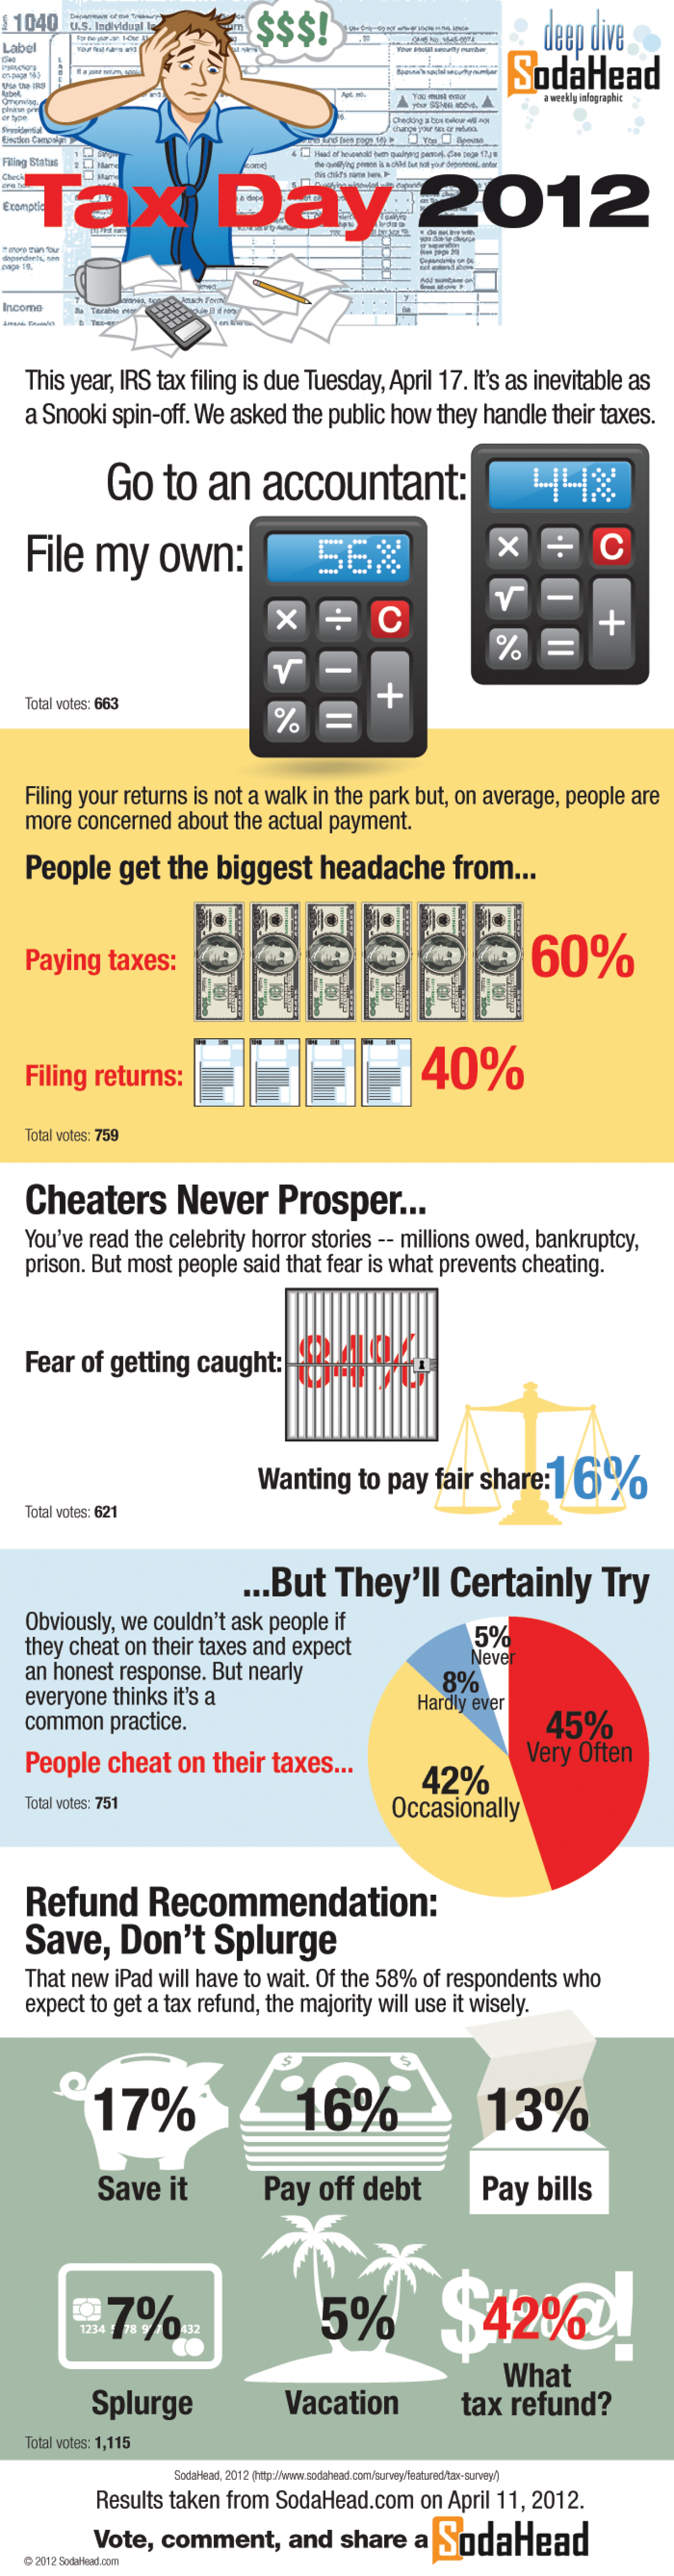 Public Opinion: File Your Own Taxes Infographic